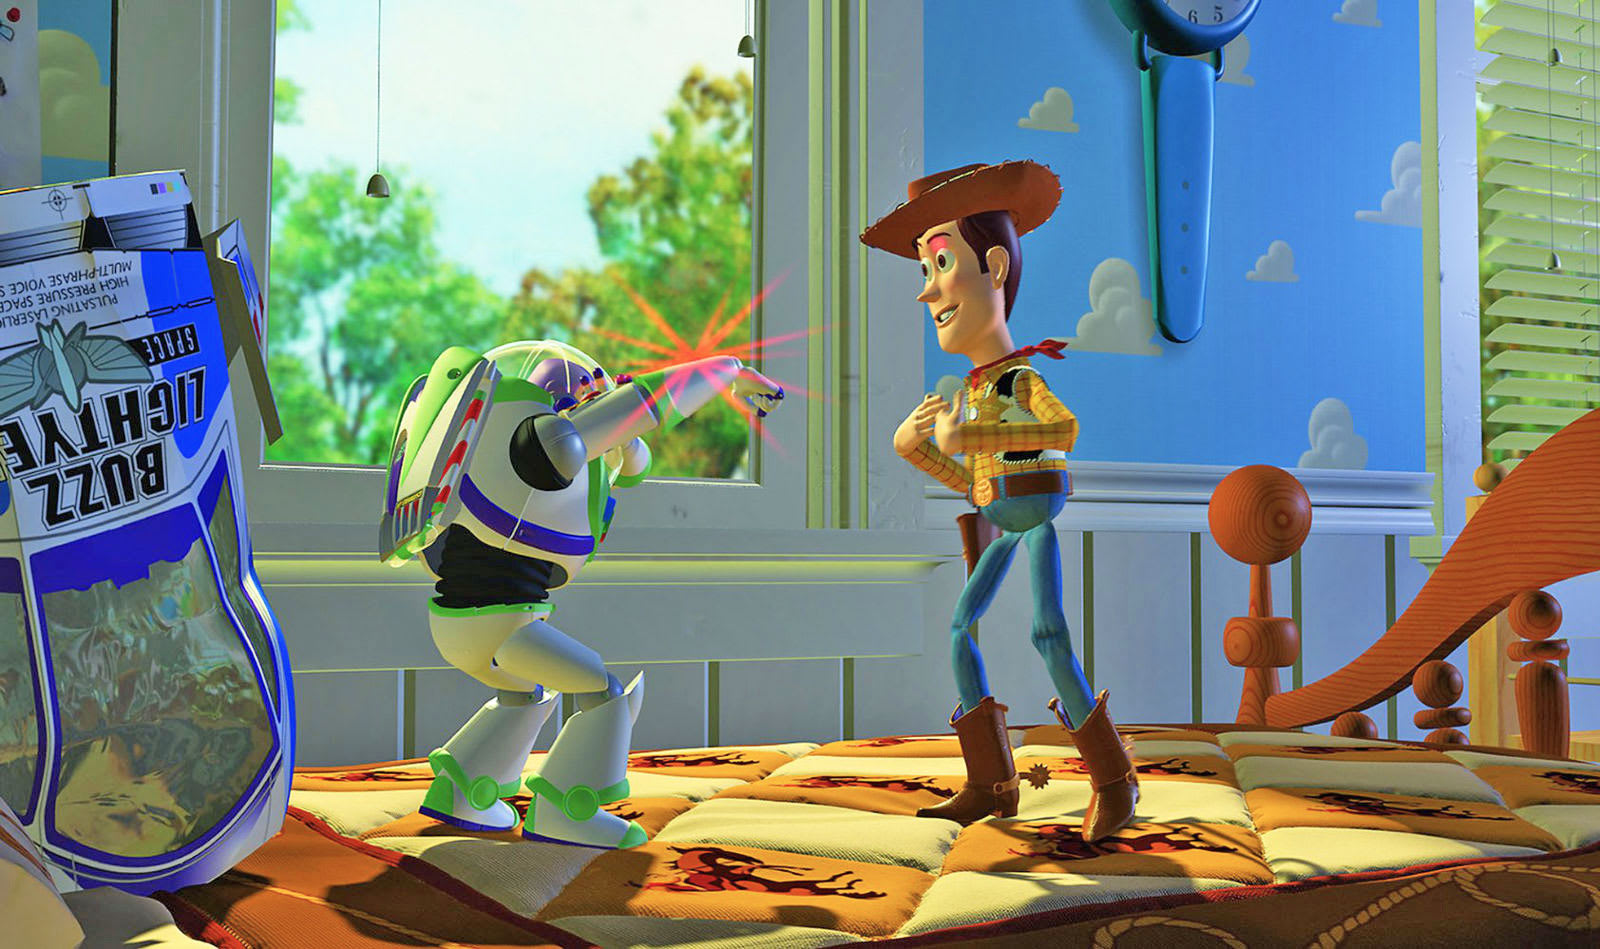 Pixar opens a free Khan Academy course on storytelling